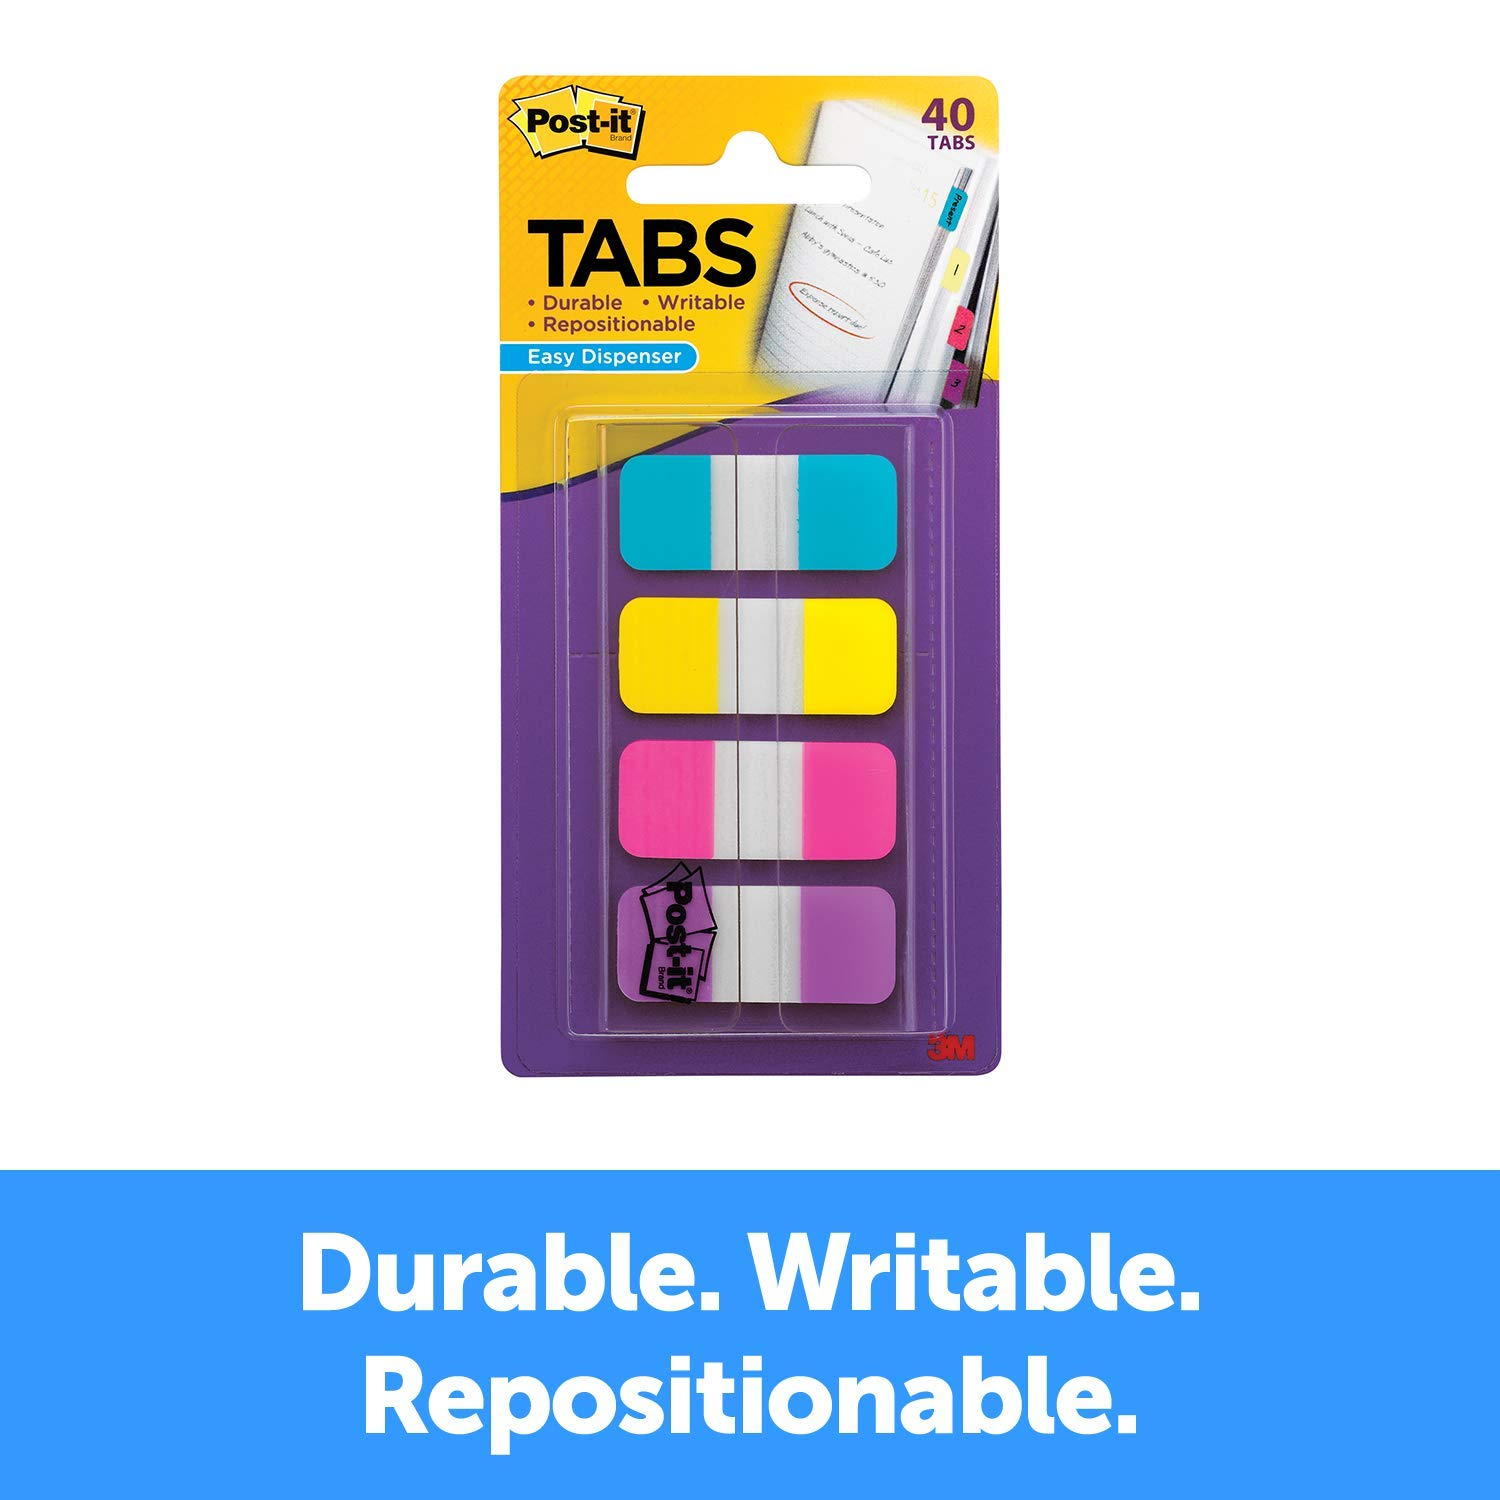 Post-it Tabs.625 in. Solid, Aqua, Yellow, Pink, Violet, Durable, Writable, Repositionable, Sticks Securely, Removes Cleanly, 10/Color, 40/Dispenser, (676-AYPV) (24) by Post-it